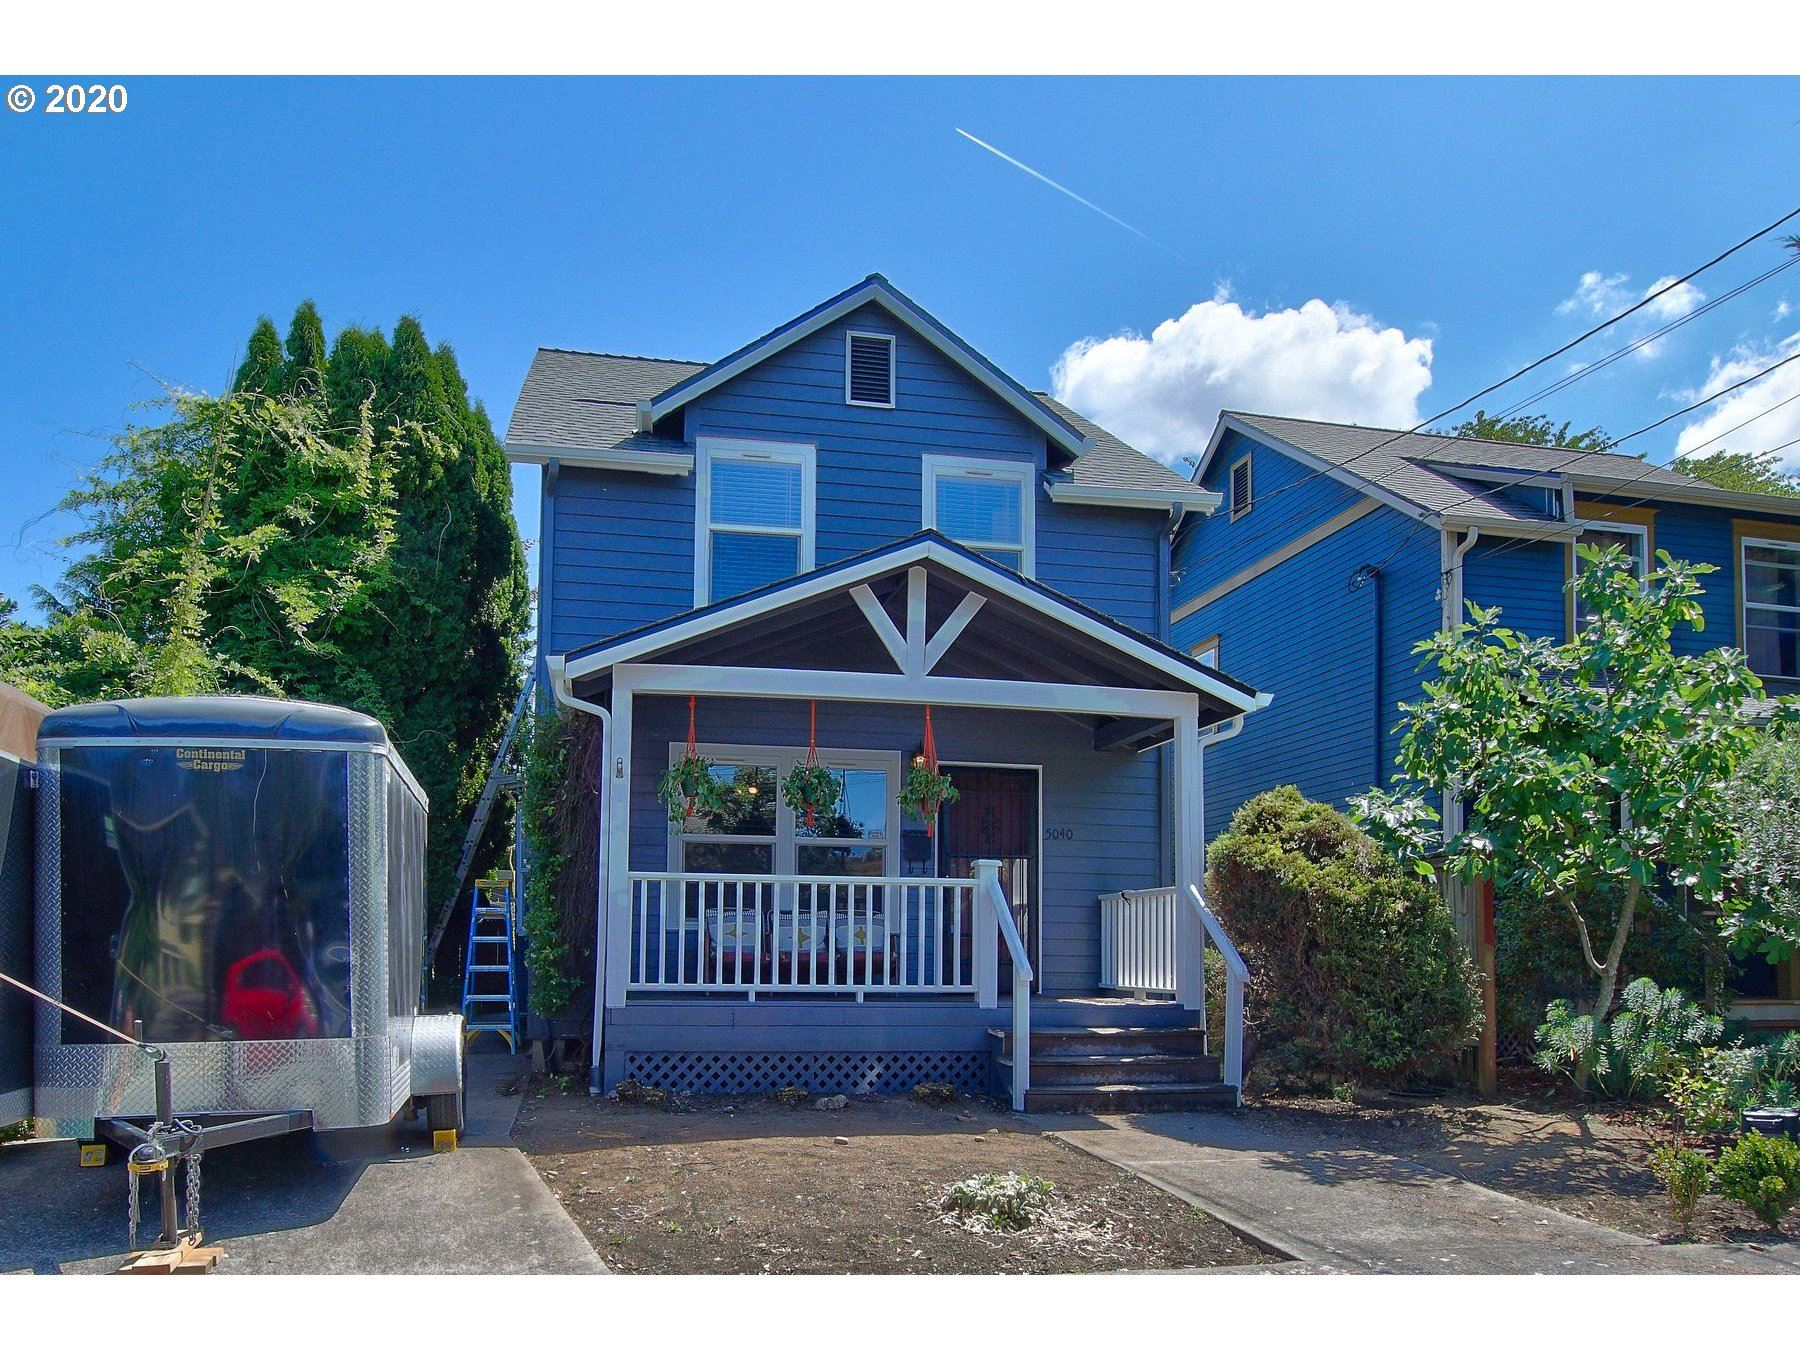 5040 NE 18TH AVE, Portland, OR 97211 - MLS#: 20659275